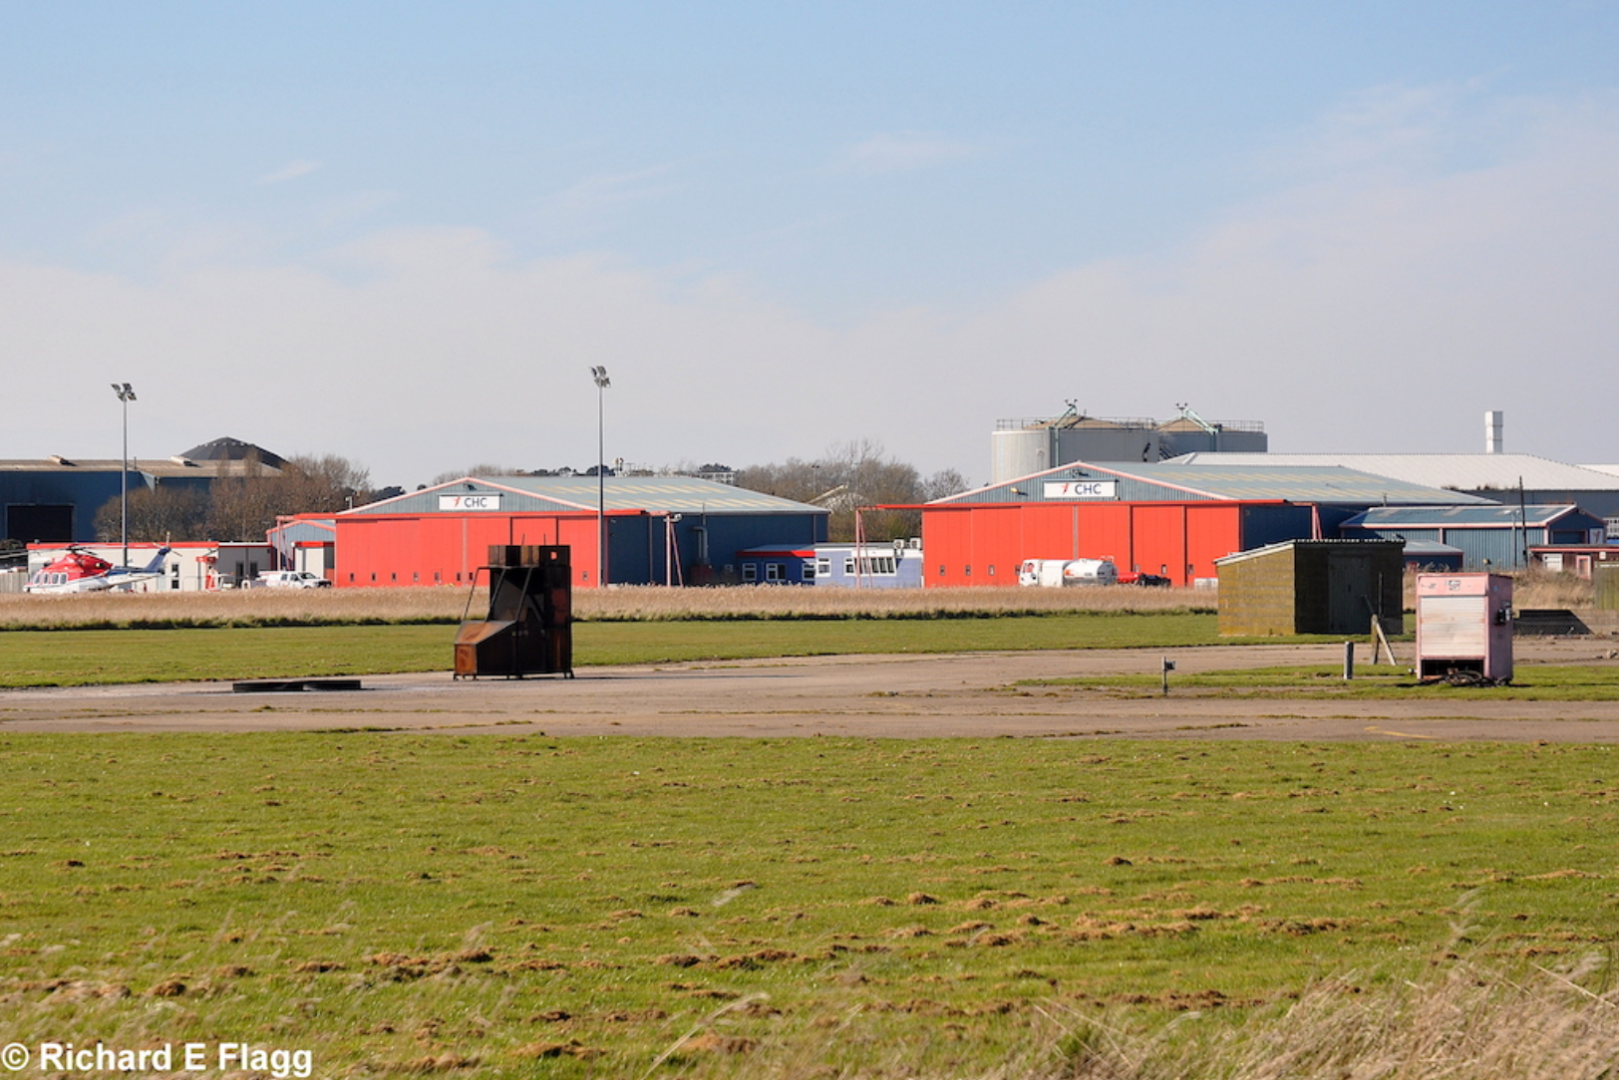 002Looking from near the control tower towards the hangars - 16 March 2014.png